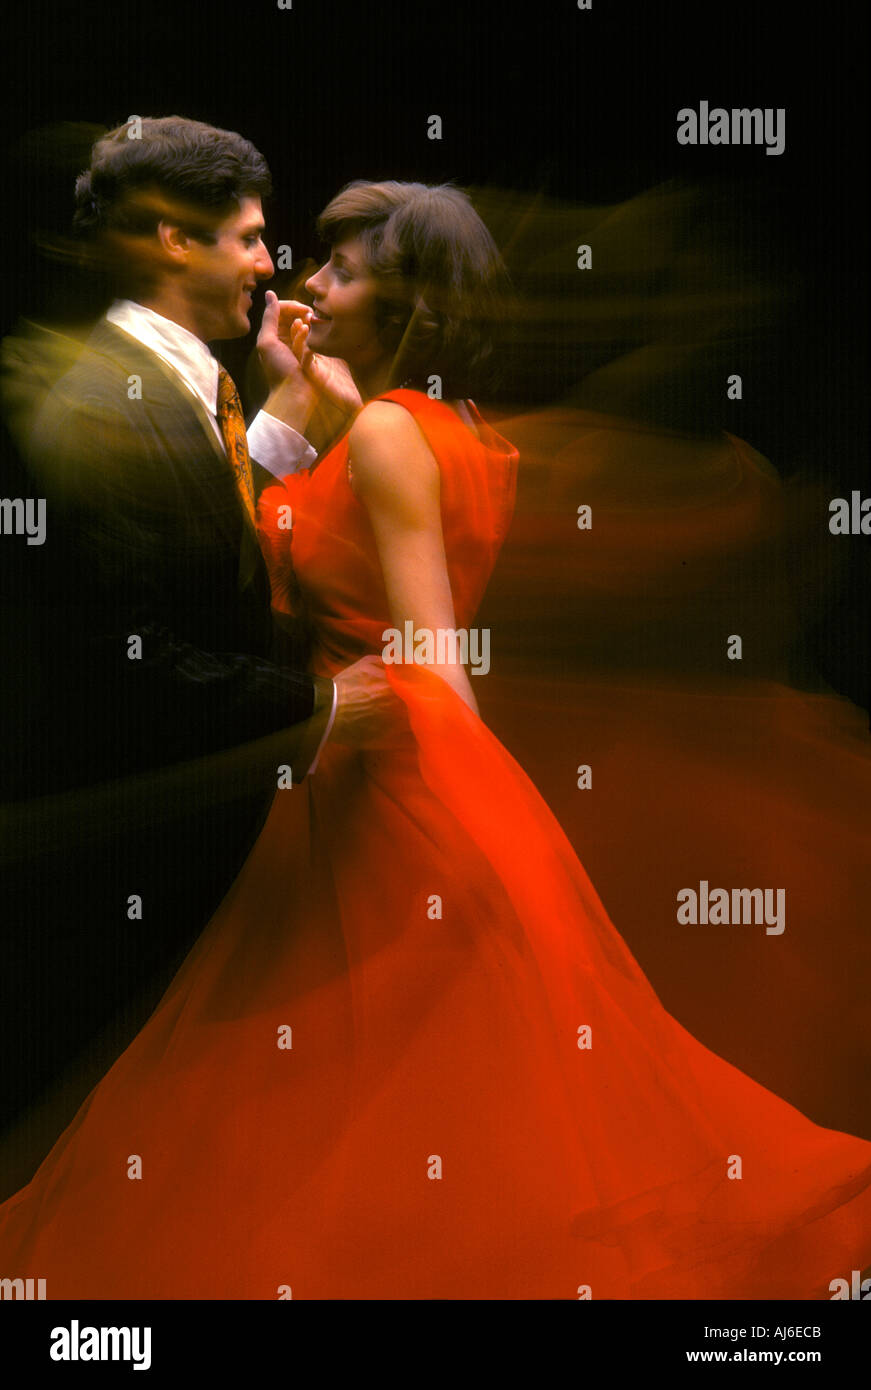 8cac2cf5f6be Man dancing with woman in red dress Stock Photo: 1208010 - Alamy